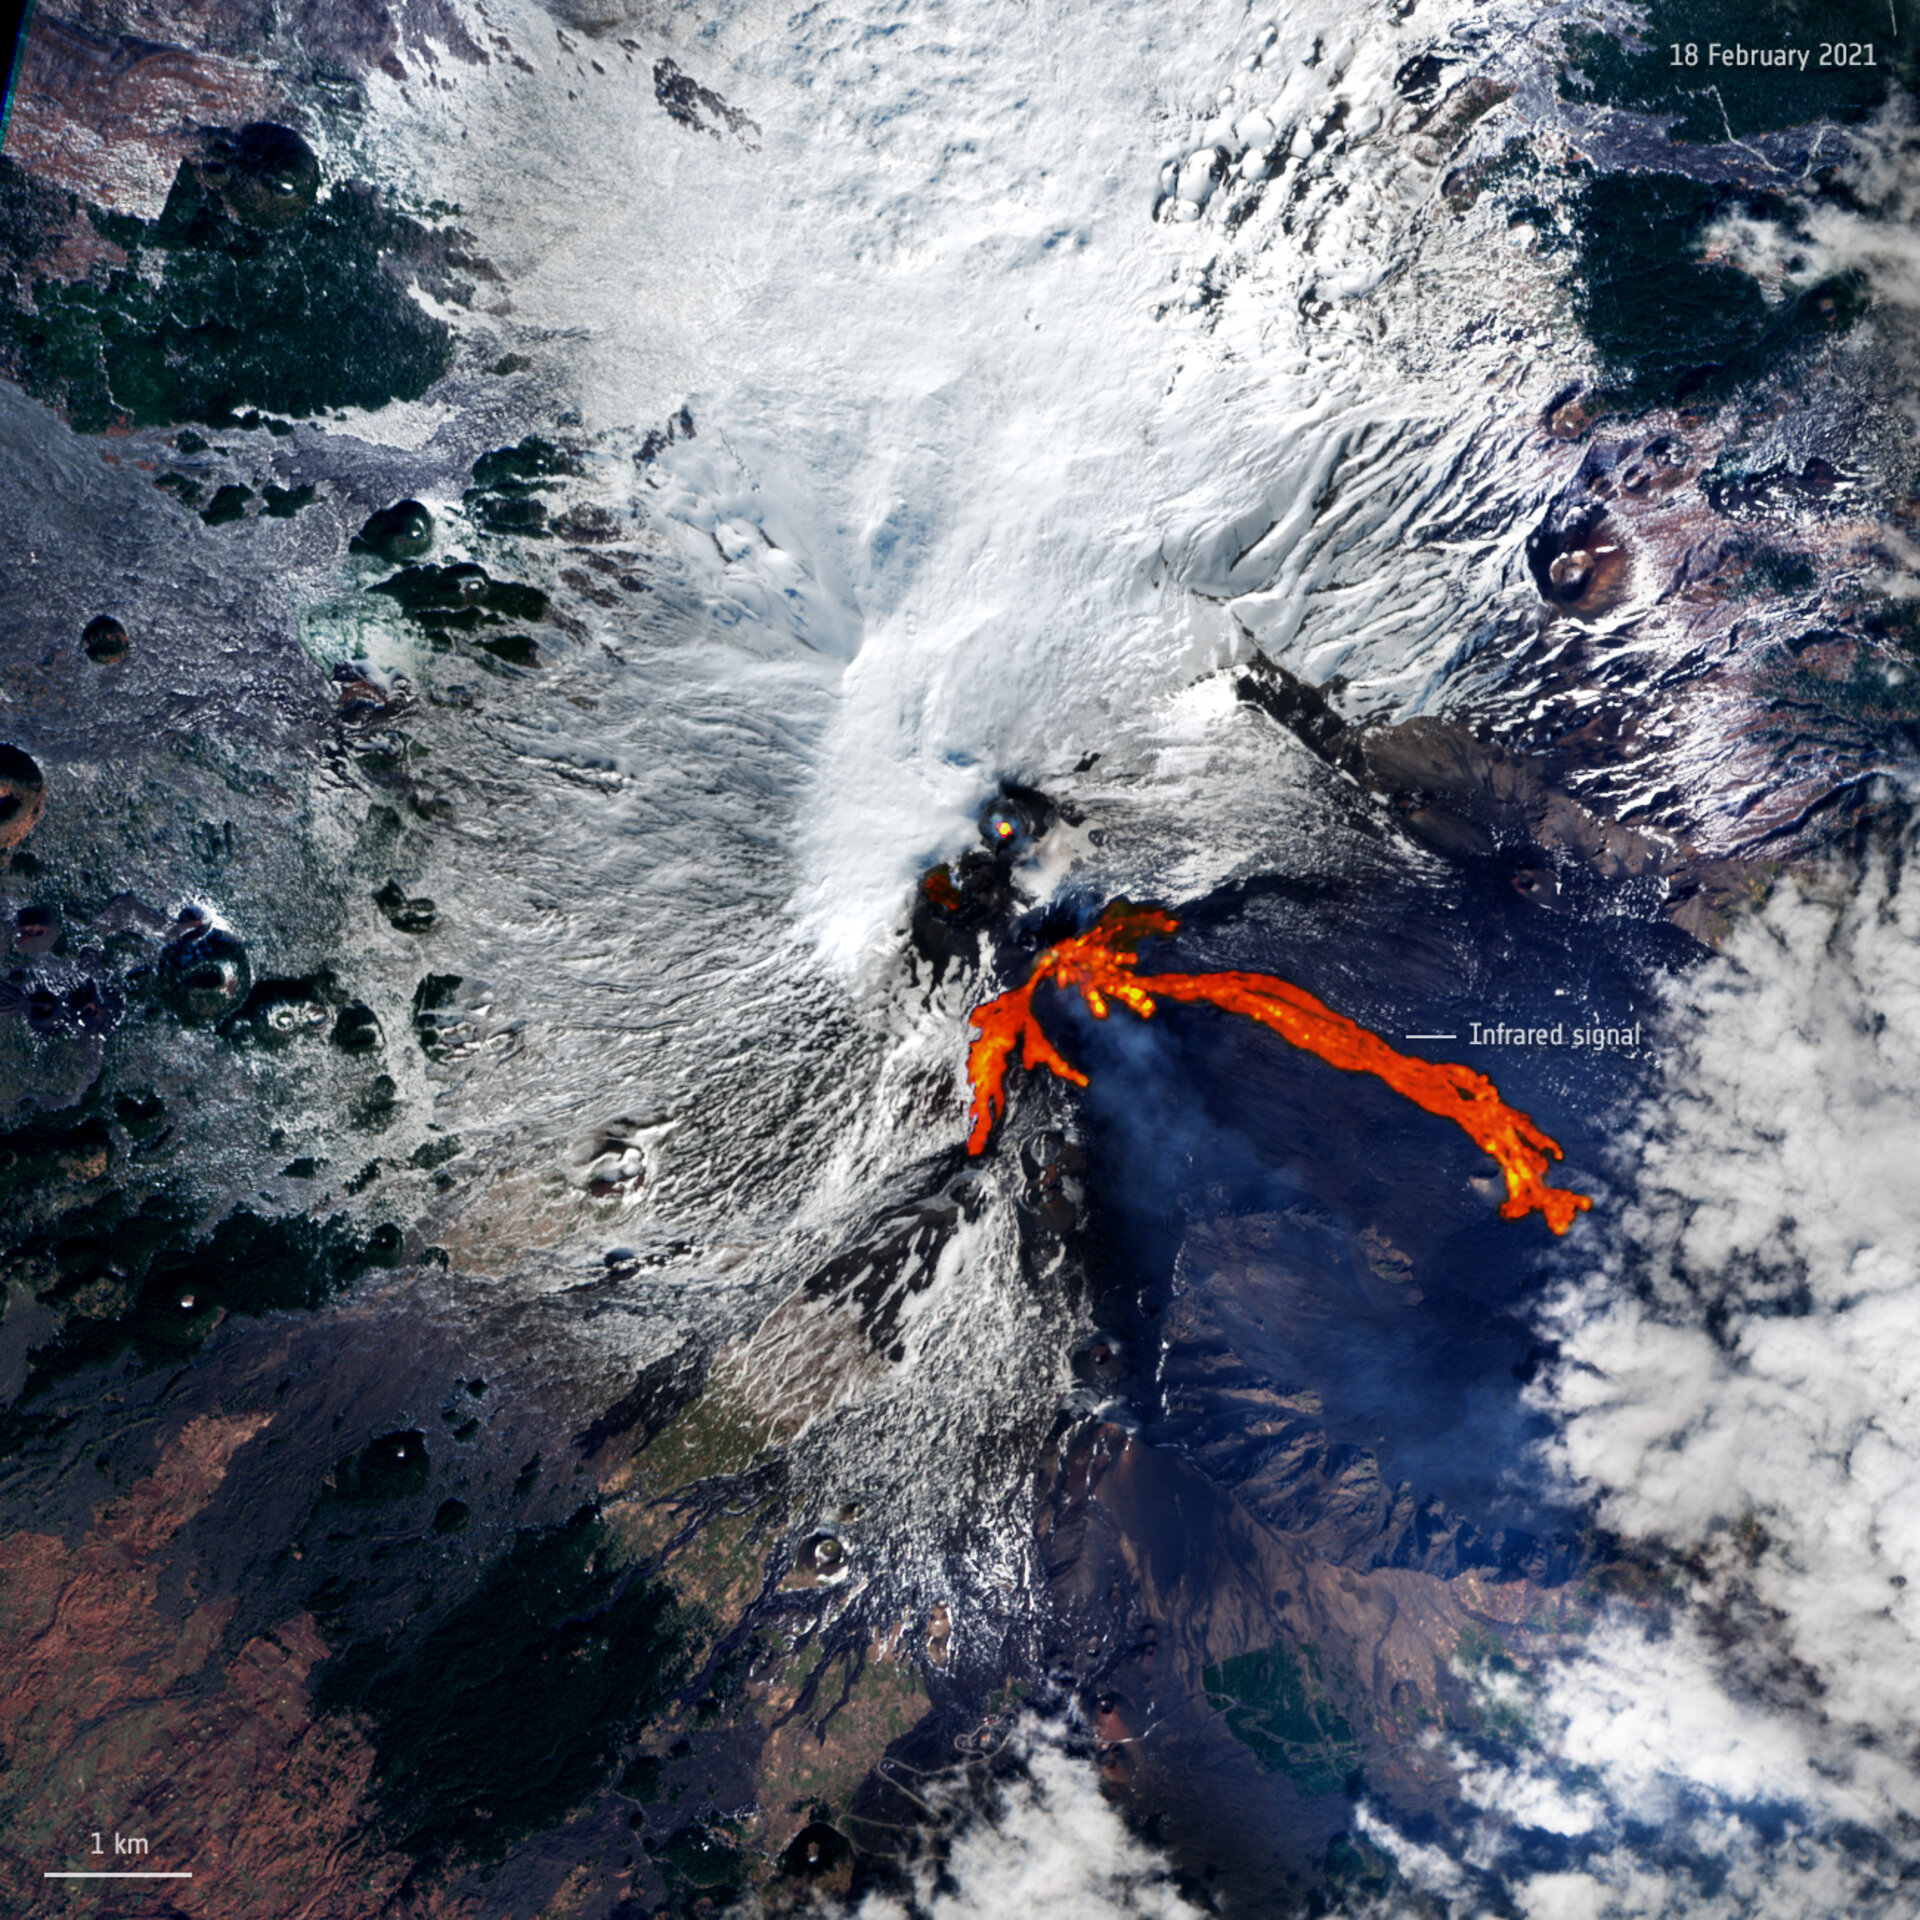 Italy's Mount Etna, one of the world's most active volcanoes, has erupted twice in less than 48 hours, spewing a fountain of lava and ash into the sky. This Copernicus Sentinel-2 image has been processed to show the lava flow in bright red.